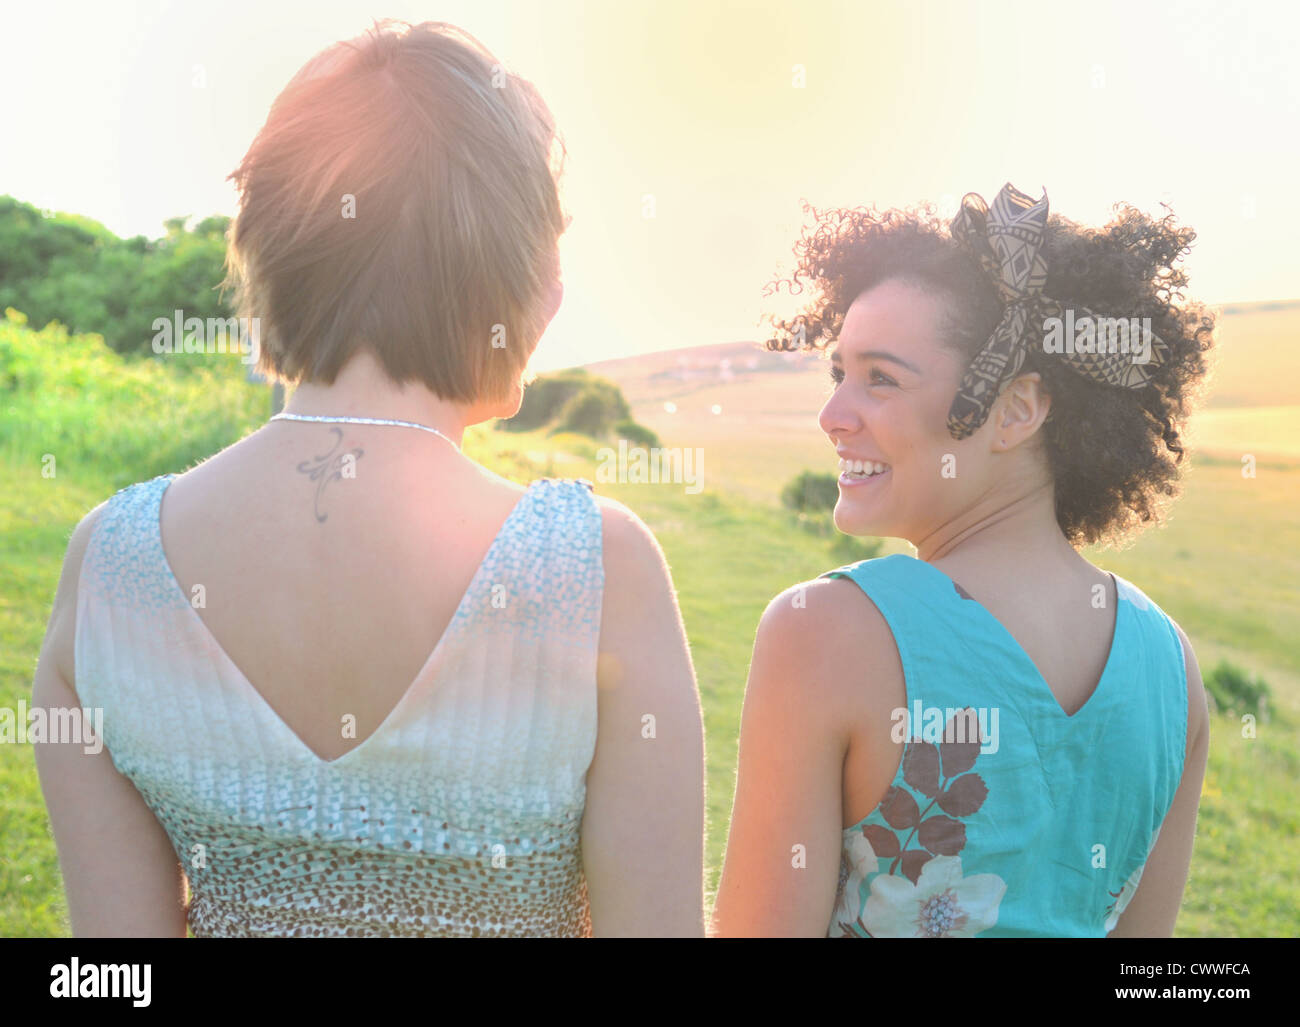 Smiling women standing in meadow Photo Stock